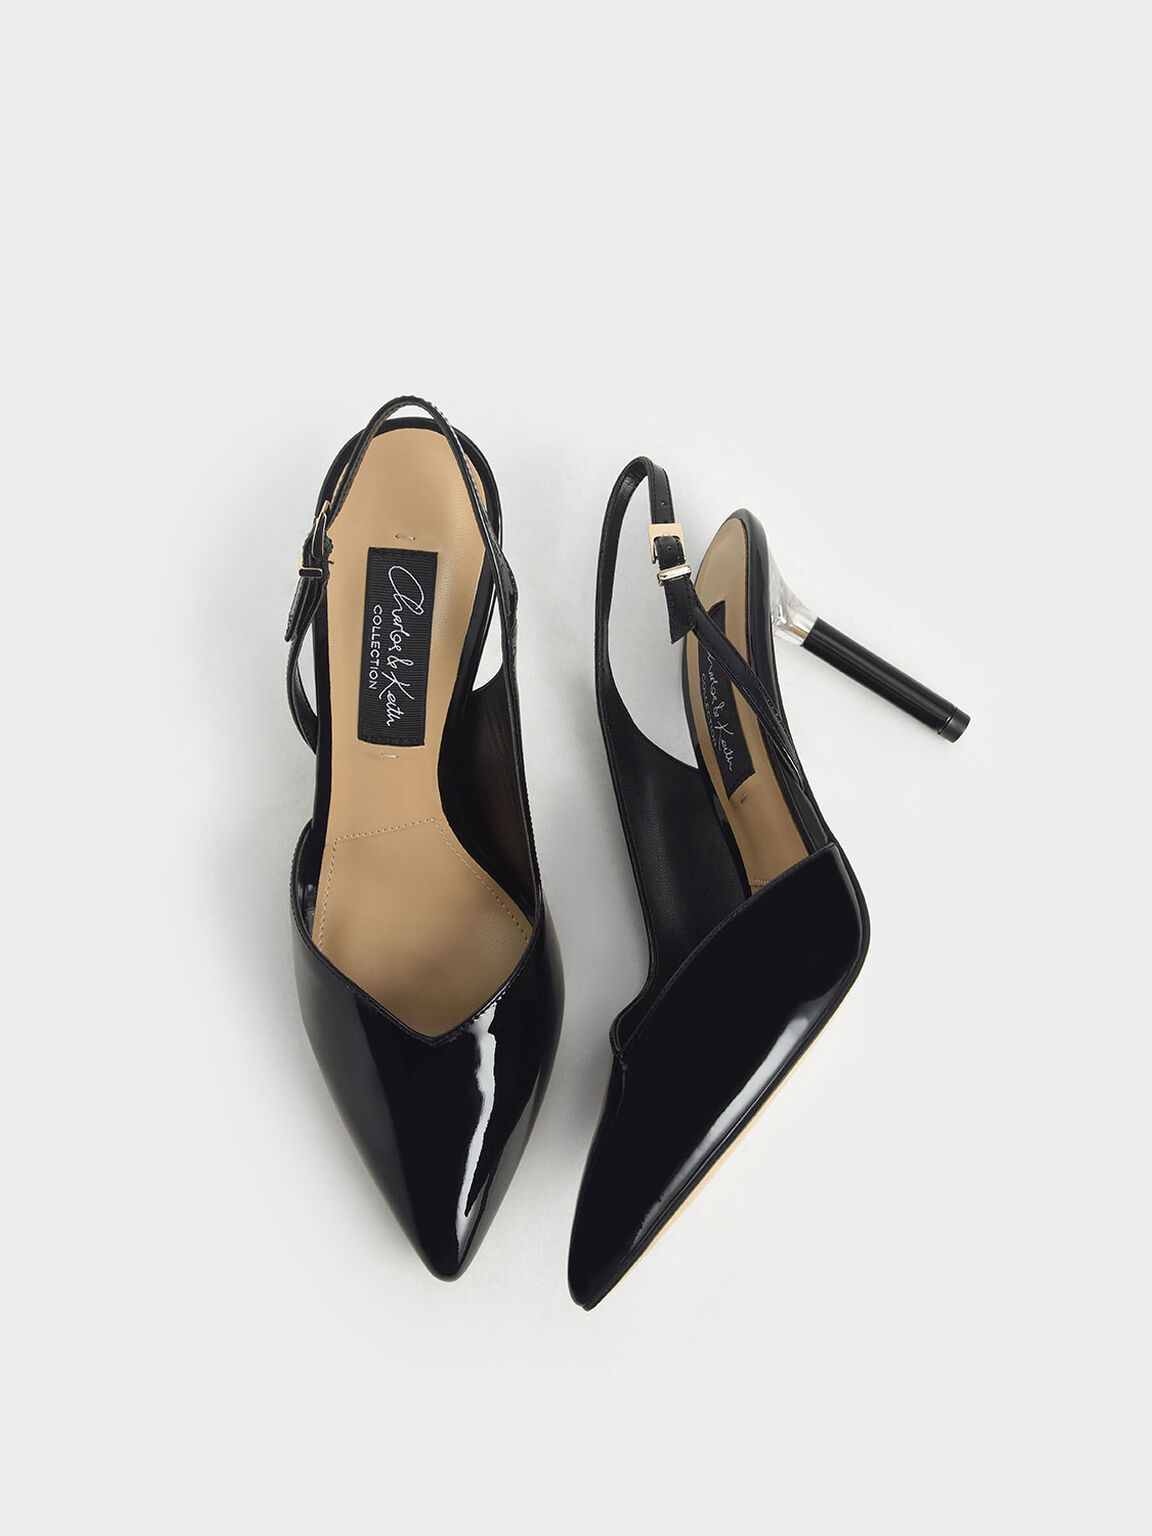 Patent Leather Half D'Orsay Slingback Pumps, Black, hi-res